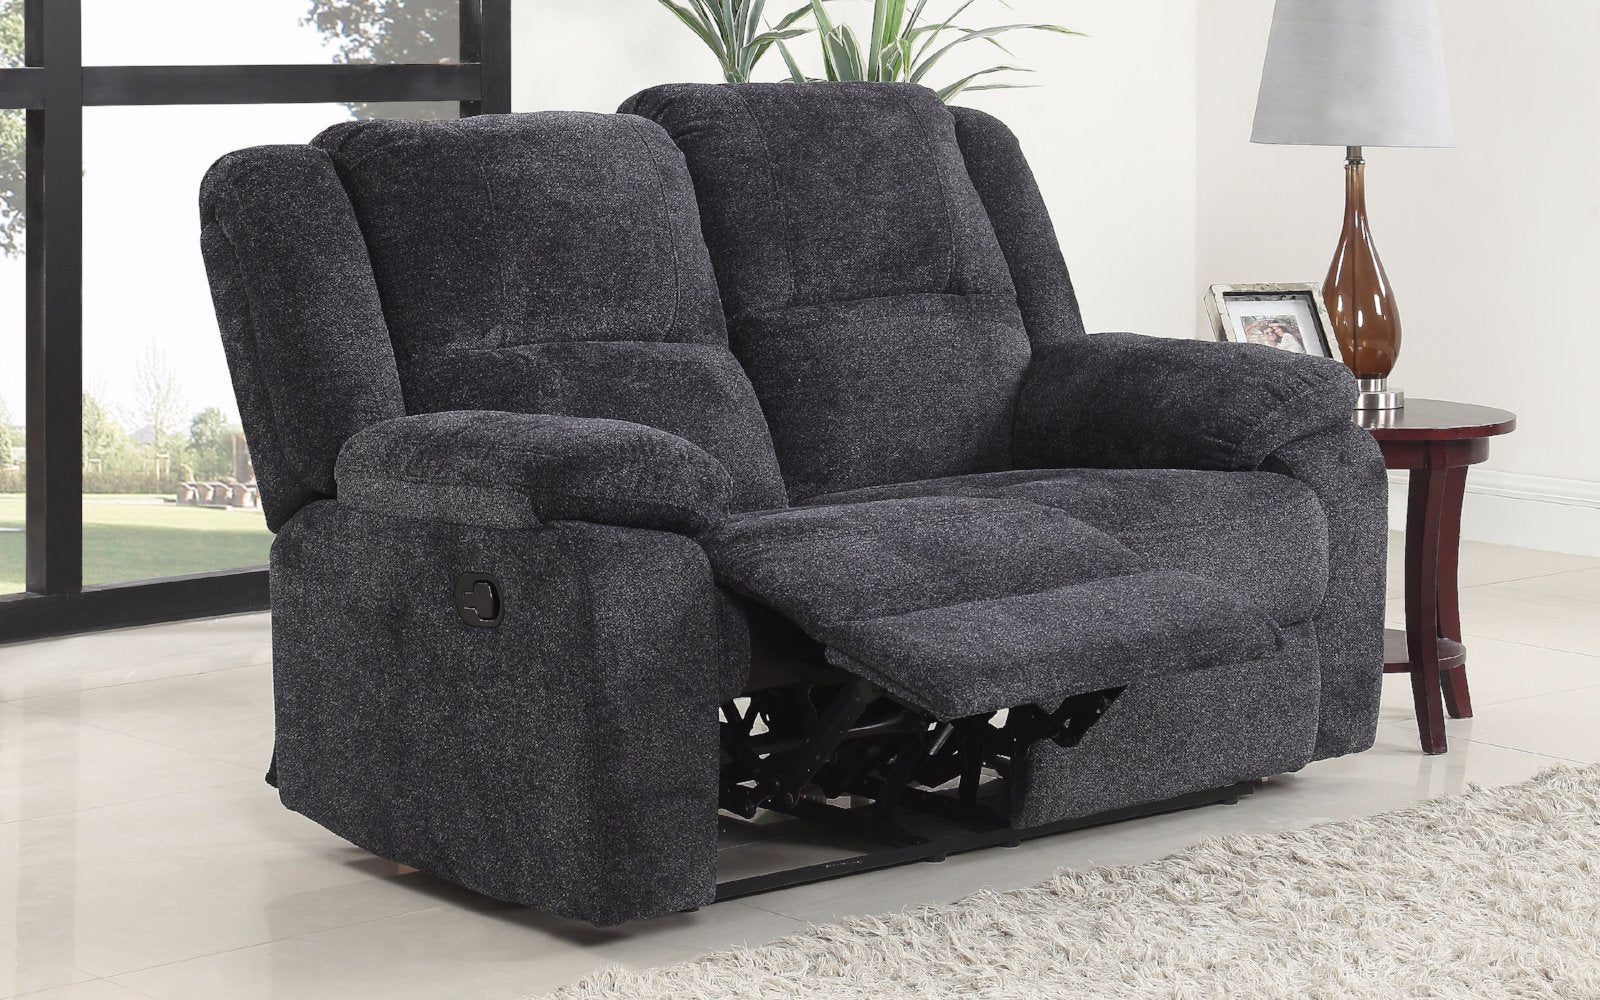 Asturias traditional classic microfiber double recliner loveseat dark grey lifestyle